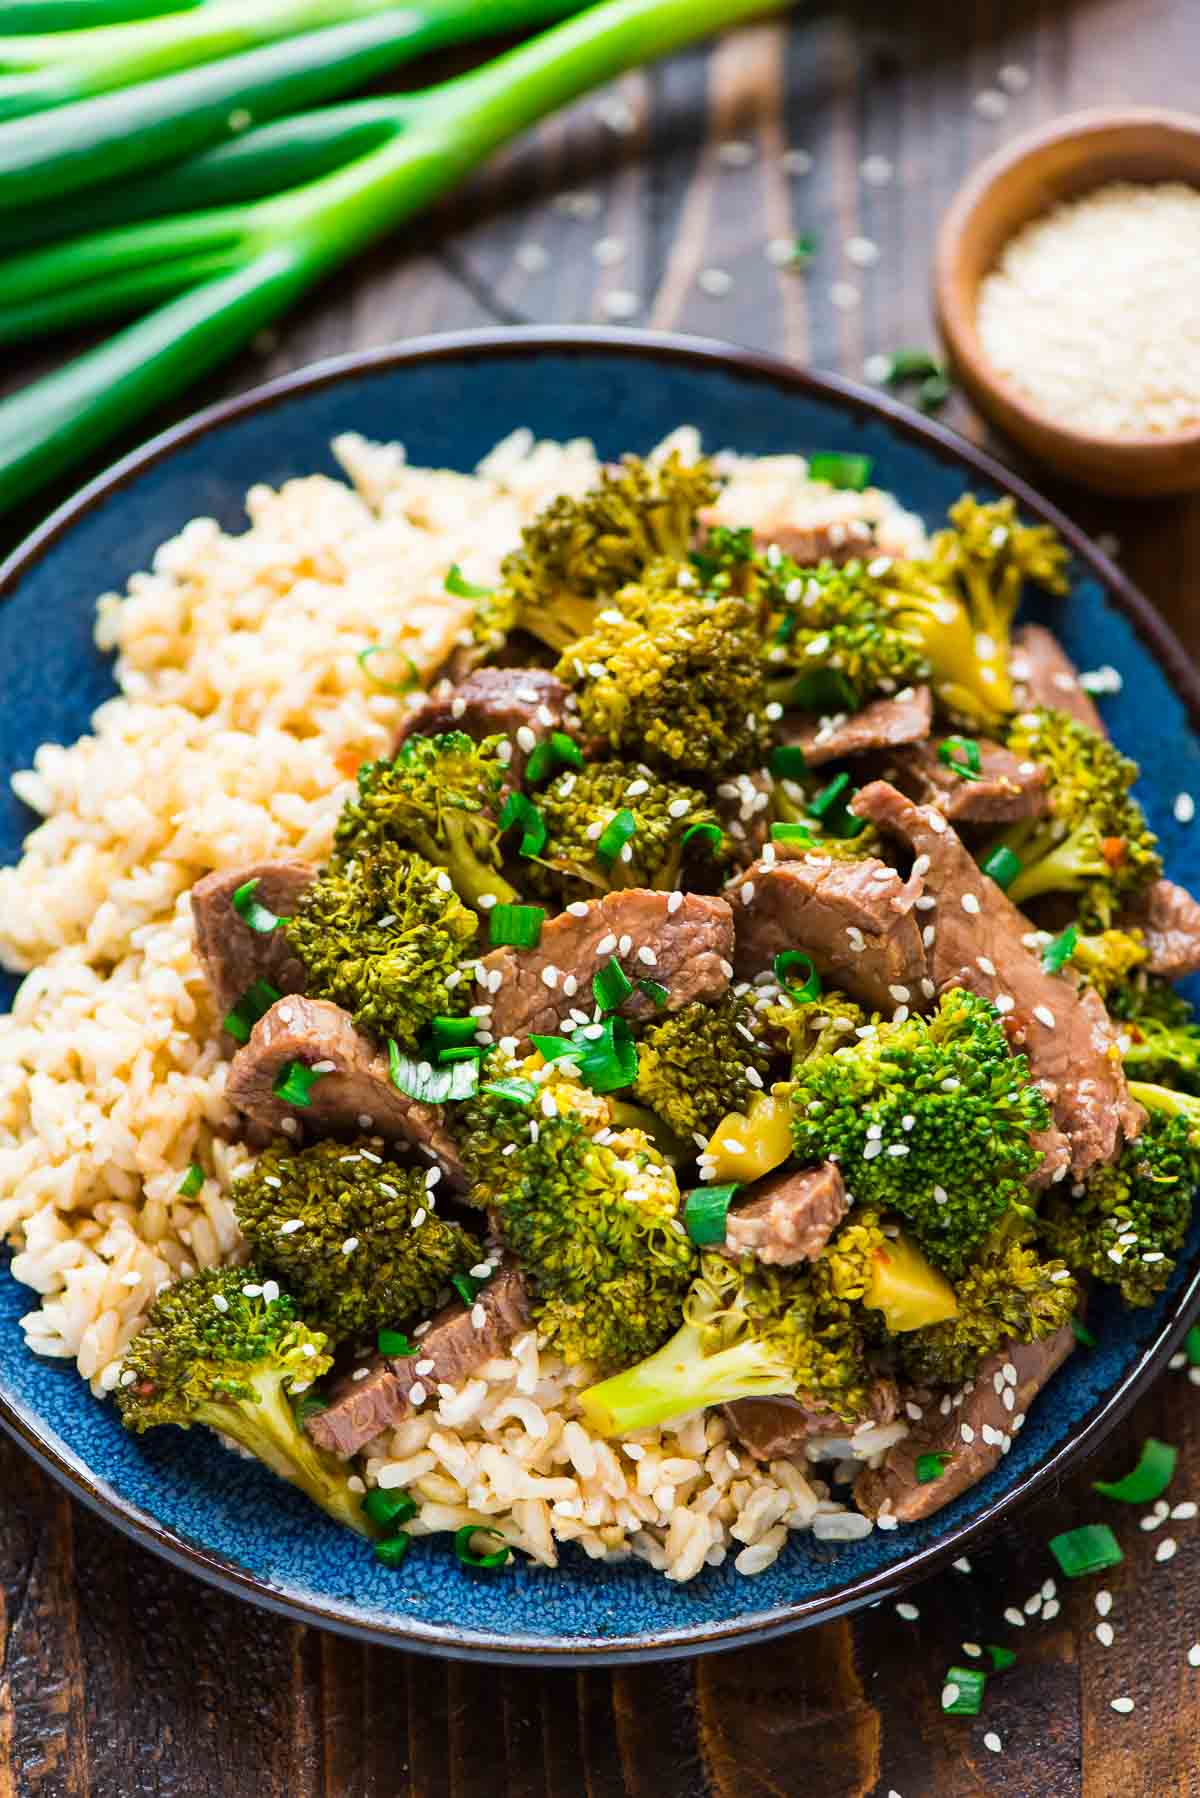 Slow Cooker Beef and Broccoli. Super EASY and the sauce tastes AMAZING. Healthy, low carb, and so much better tasting than take out. Everything cooks right in the crock pot, even the sauce! Recipe at wellplated.com | @wellplated